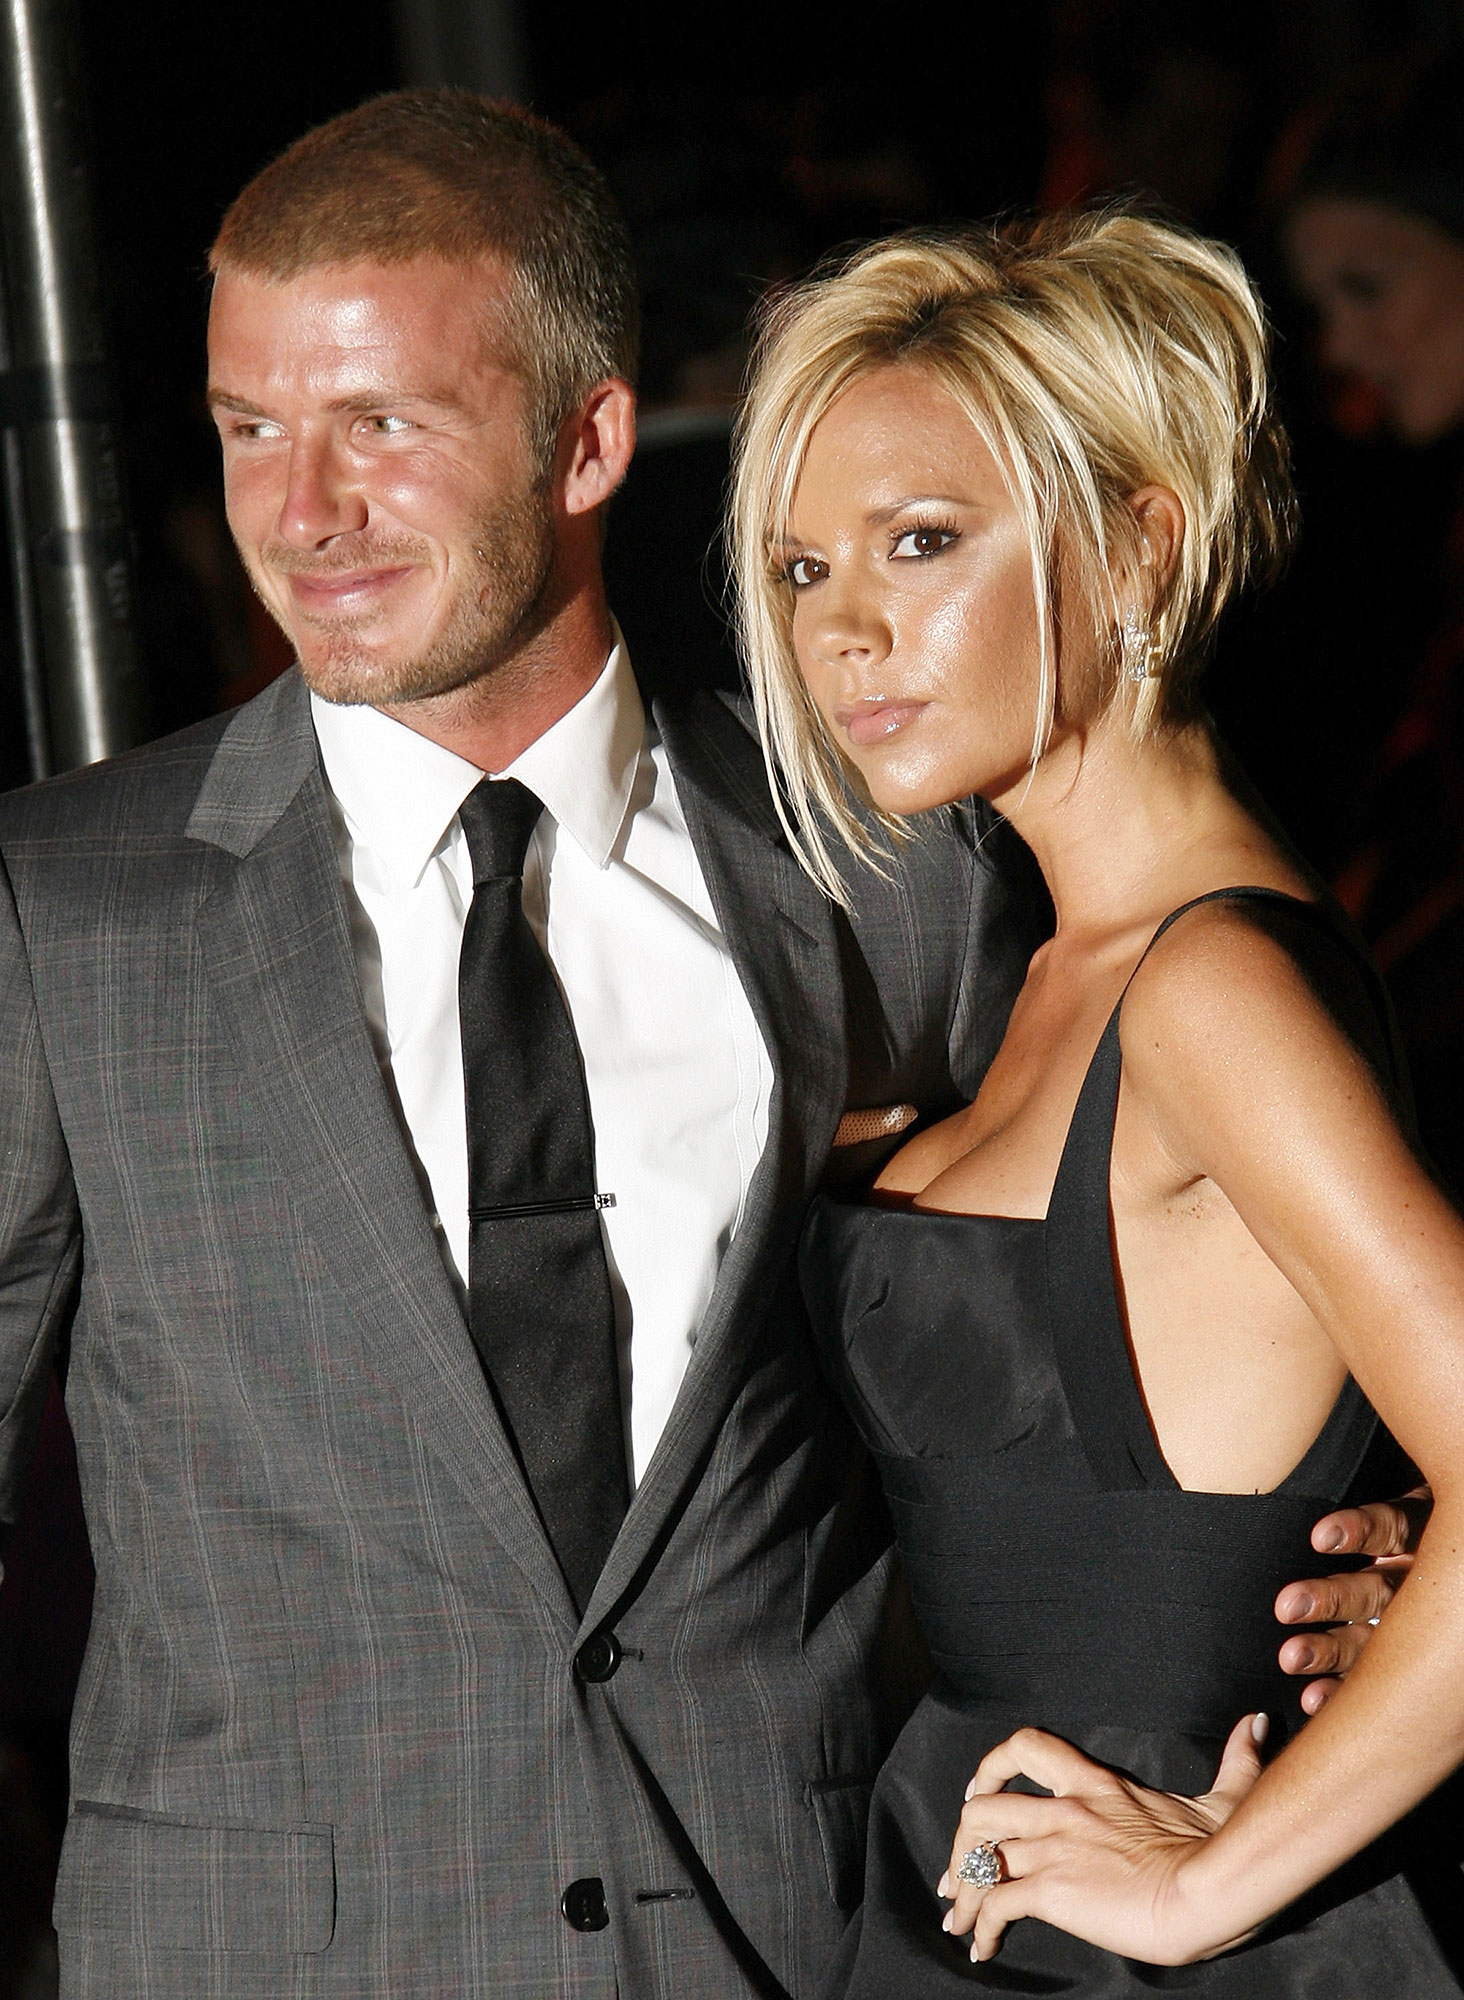 Victoria and David Beckham timeline gallery - Big changes were on the horizon for the Beckhams once more in 2007: David joined the L.A. Galaxy team, resulting in a relocation to sunny California.